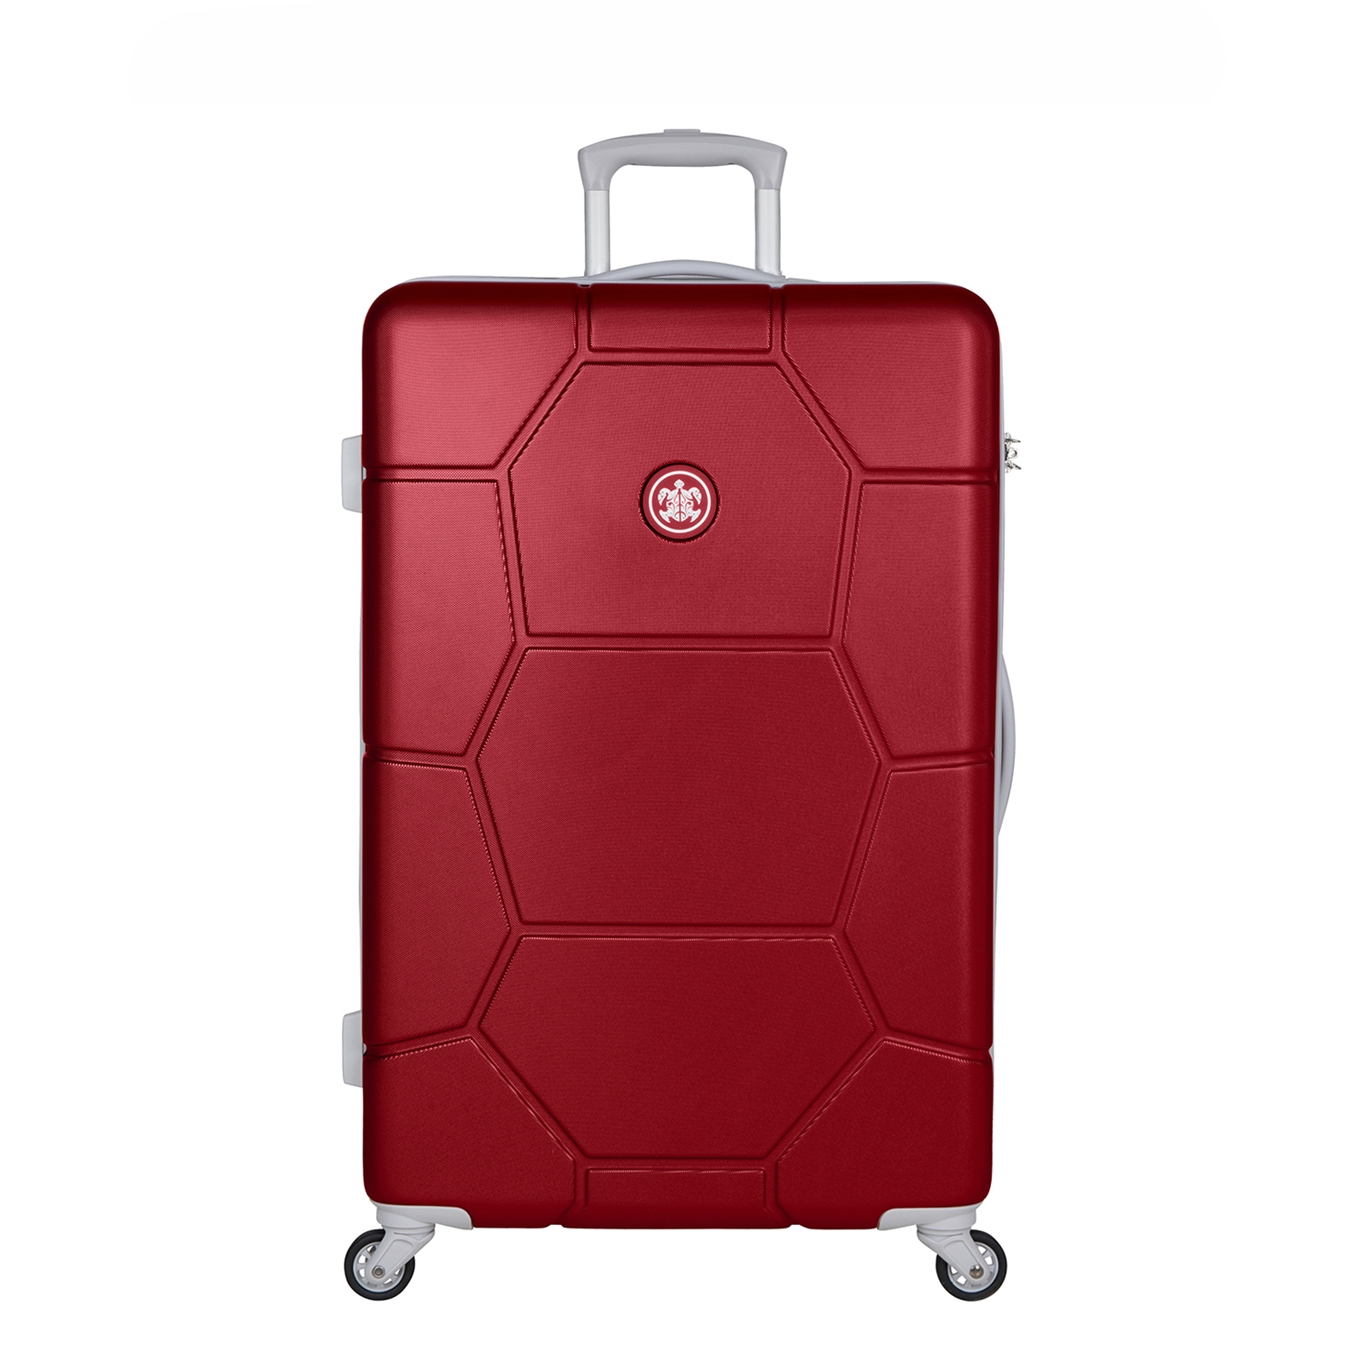 SuitSuit Caretta Trolley 76 red cherry Harde Koffer <br/></noscript><img class=